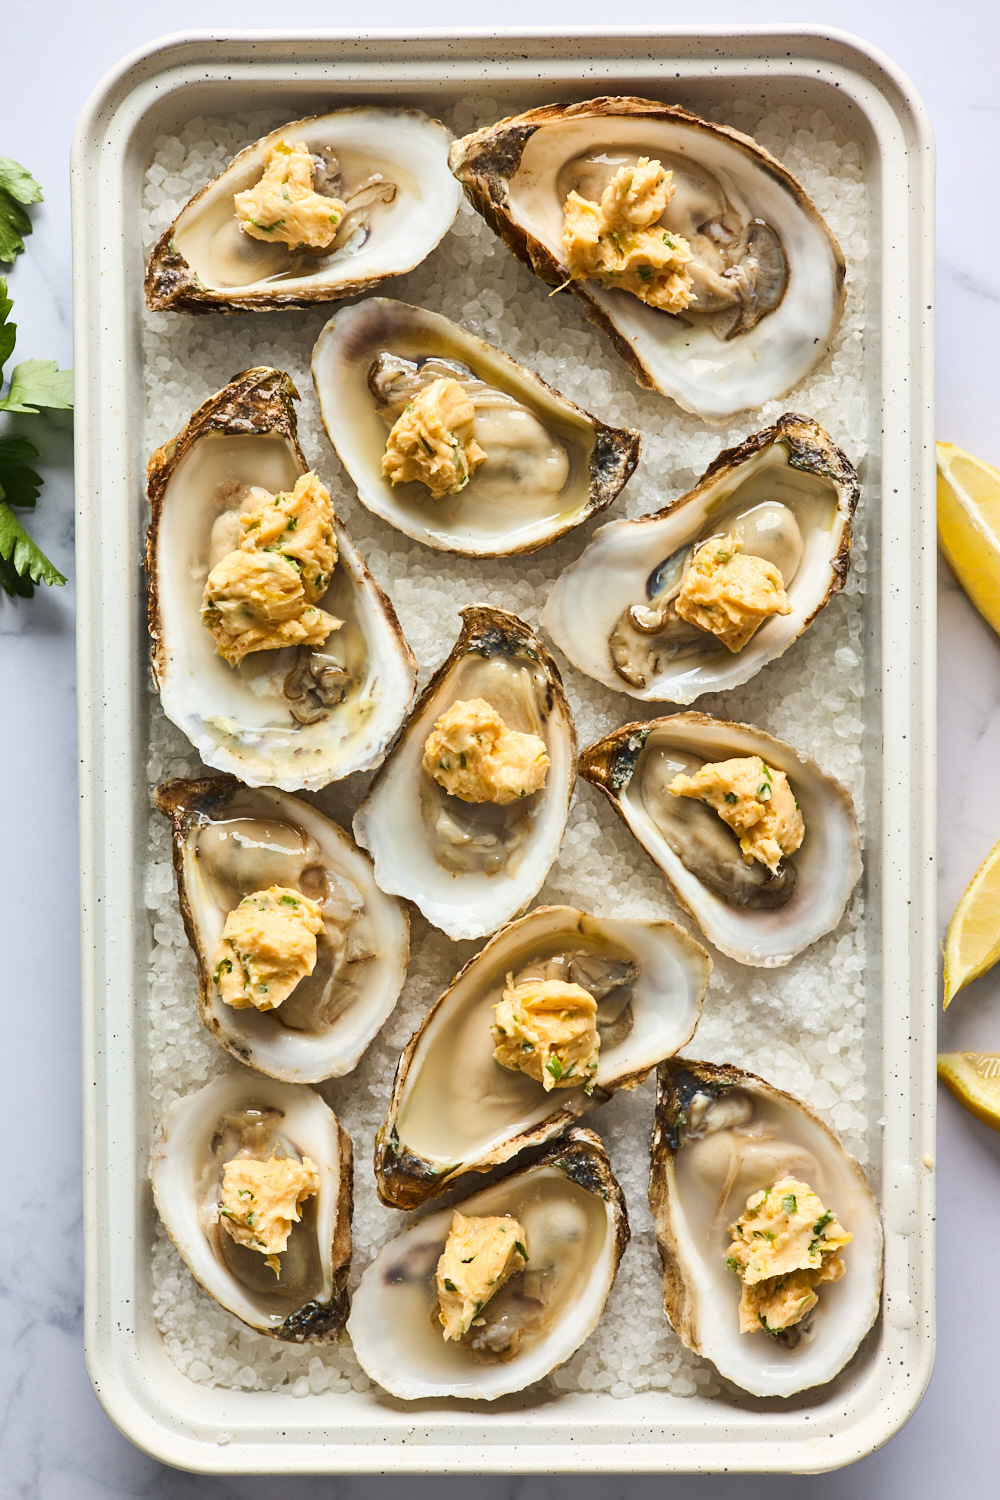 Spicy Butter and Herb Baked Oysters